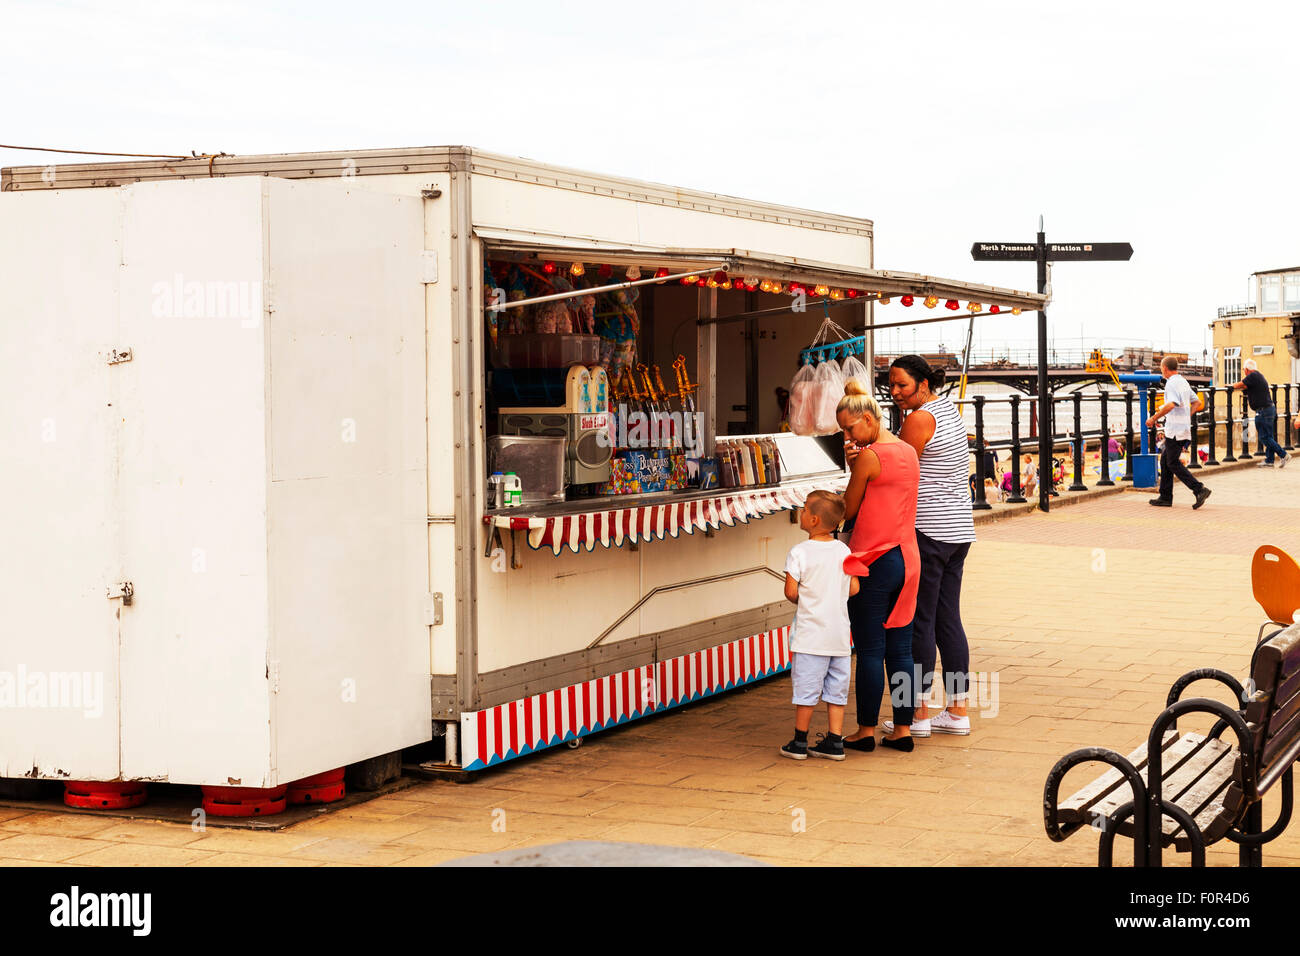 Sweet shack on Cleethorpes promenade selling slush drinks and candy floss to kids children child boy buying - Stock Image